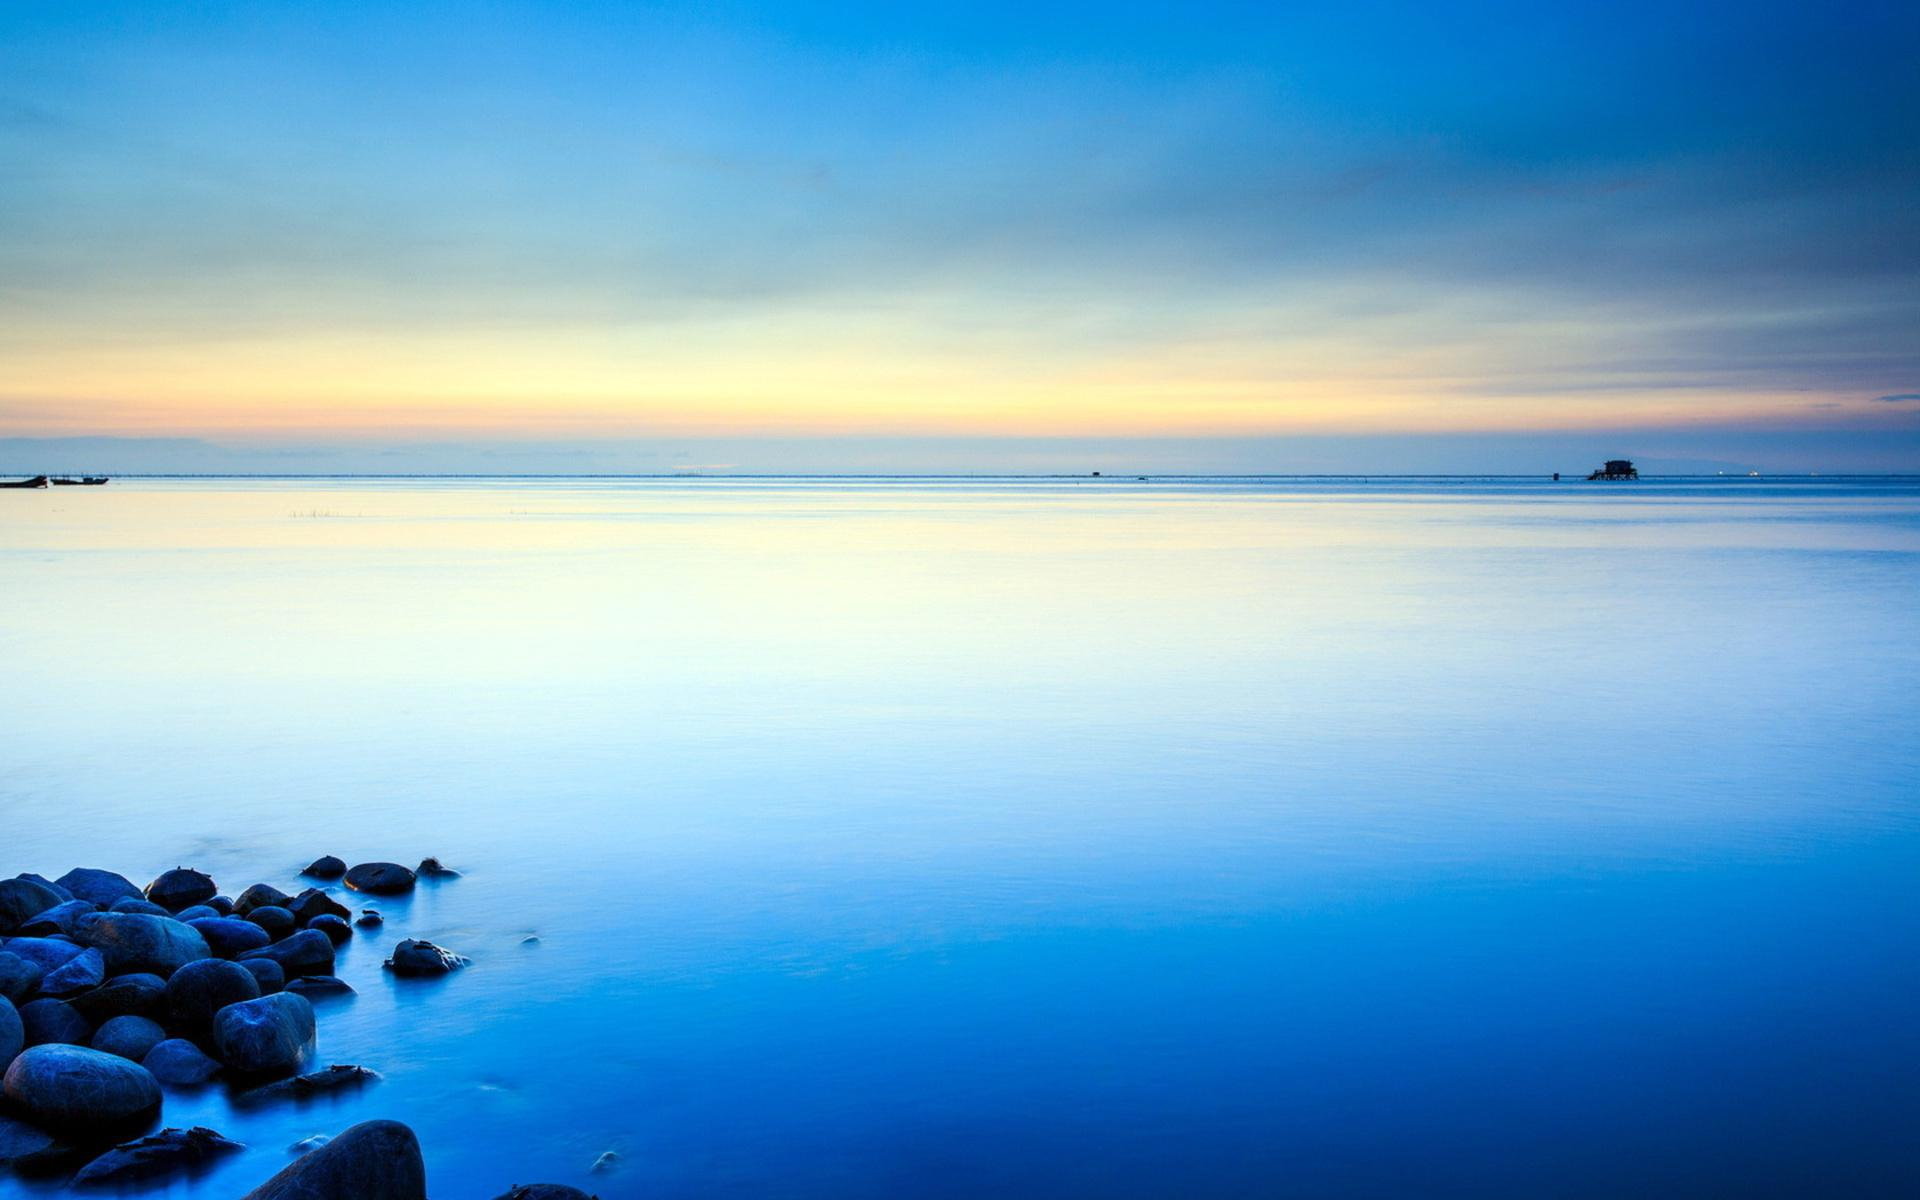 Lovely Seascape Wallpaper